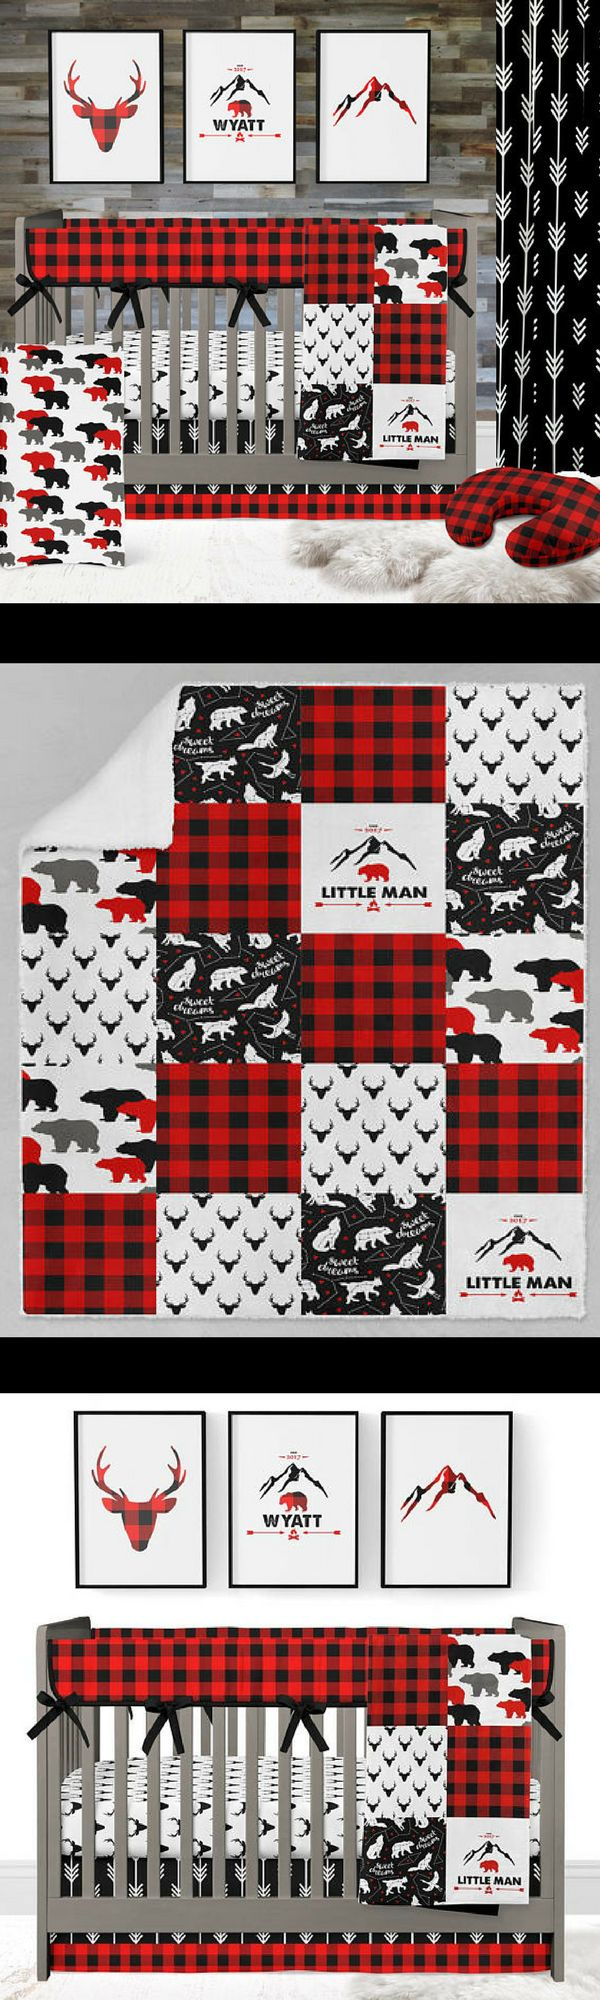 This buffalo plaid deer crib bedding set will complete your rustic baby boy nursery. Featuring a plaid rail guard, buck crib sheet, and a buffalo check trimmed crib skirt in the bold palette of red and black.  #crib #nursery #lumberjack #rustic #babyboy #affiliate